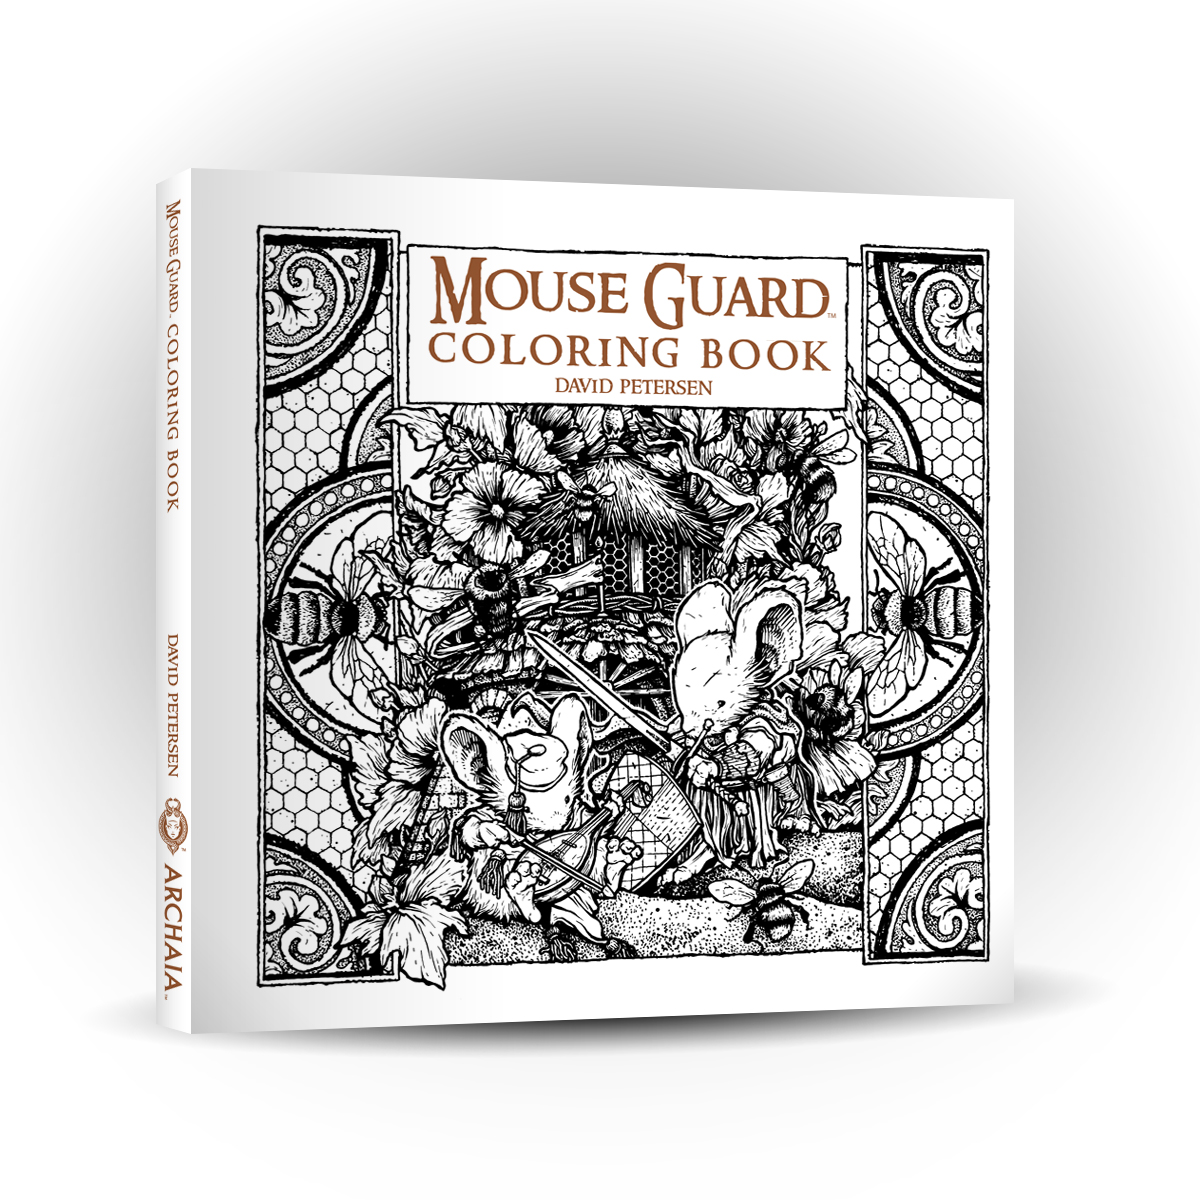 The coloring book project 2nd edition - Archaia I Have Decided To Publish A Mouse Guard Coloring Book Fans Have Asked For It And Now One Is On The Way